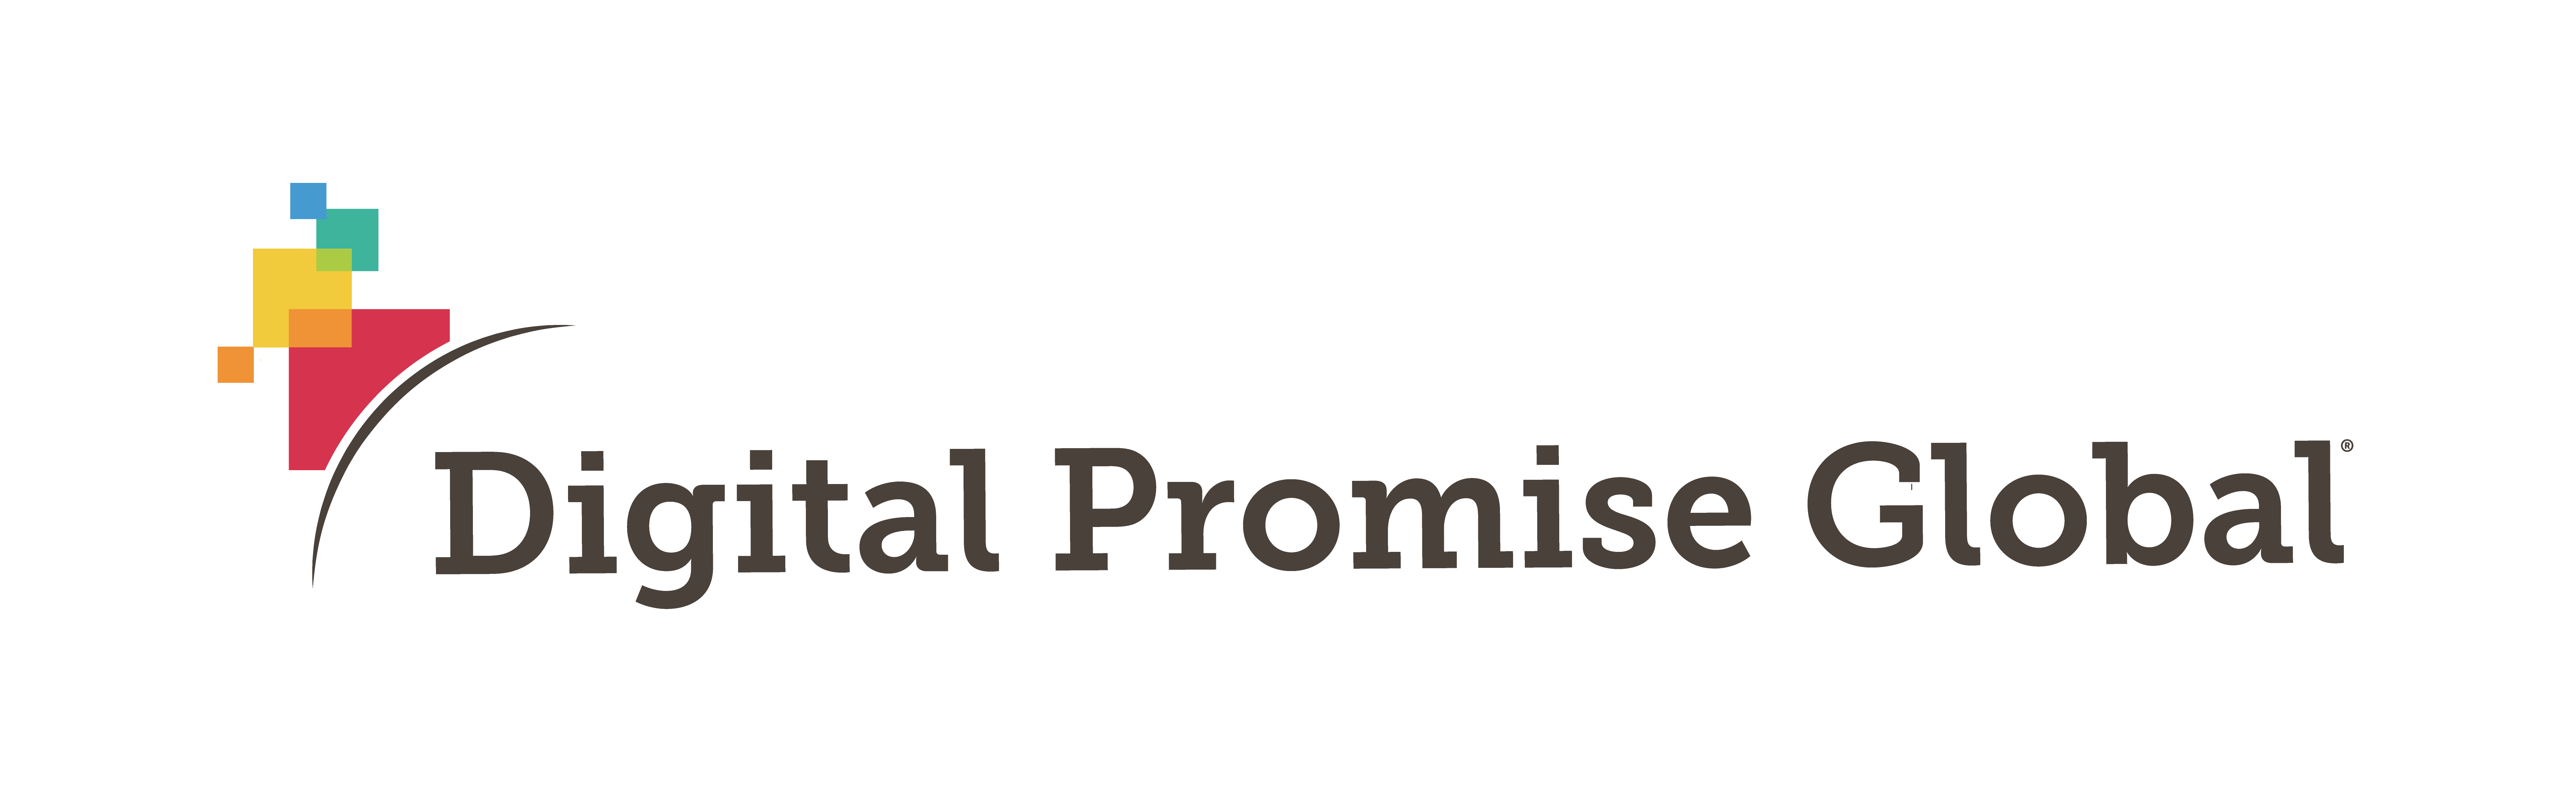 Digital Promise Global icon